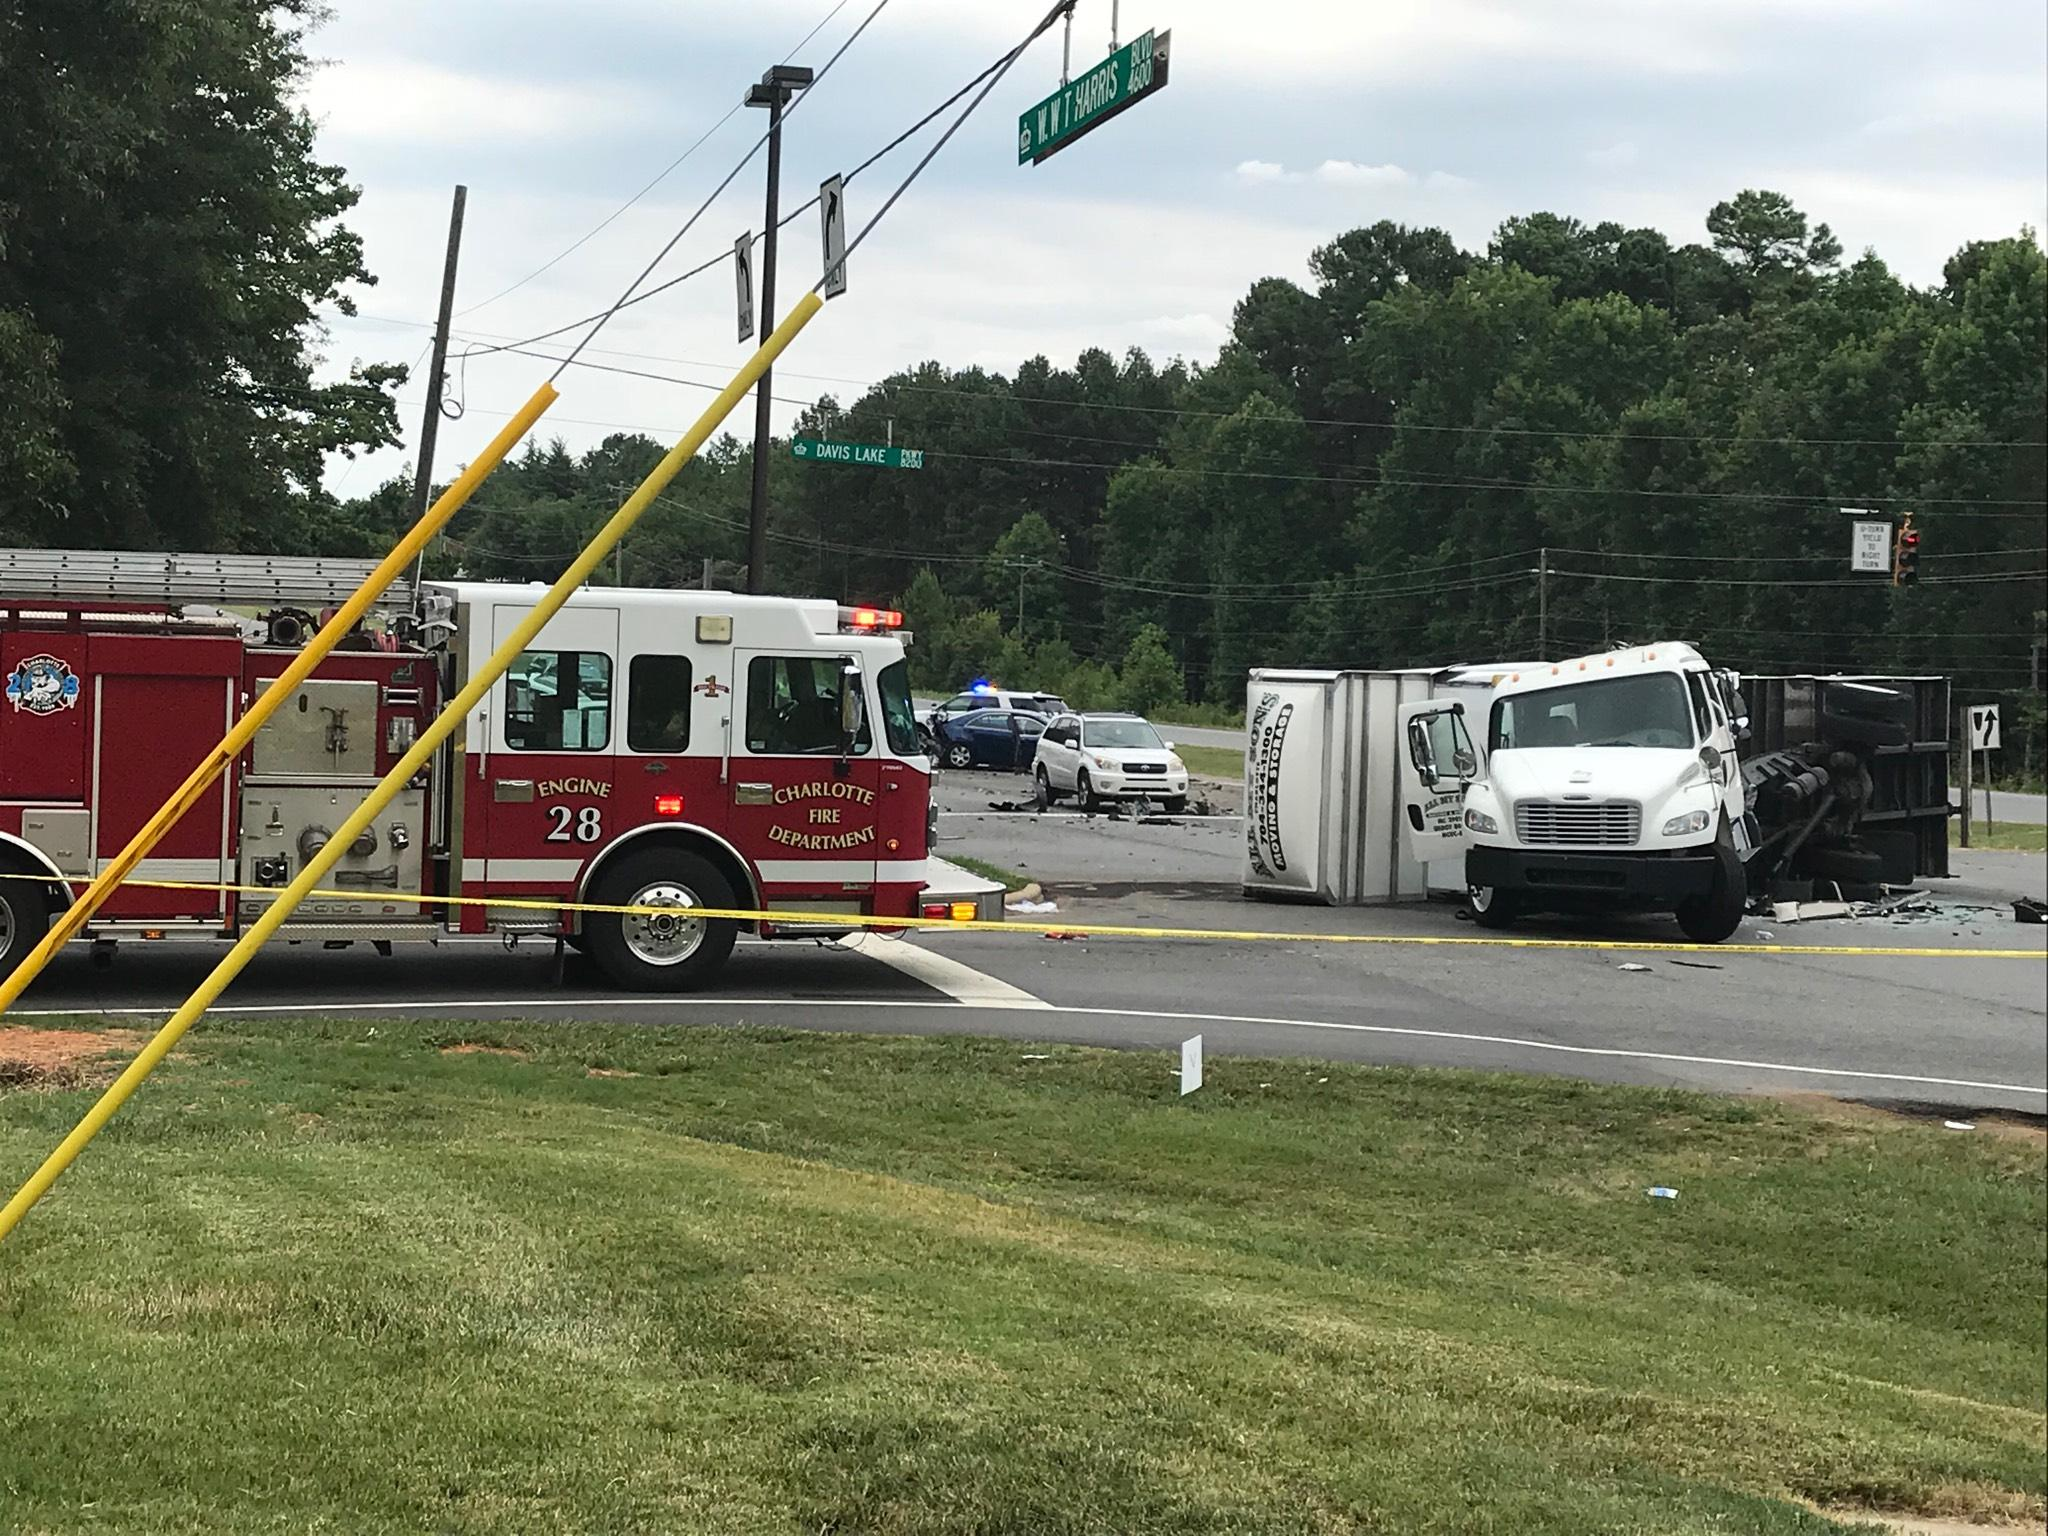 Police Release New Details On Deadly North Charlotte Accident - WCCB ...